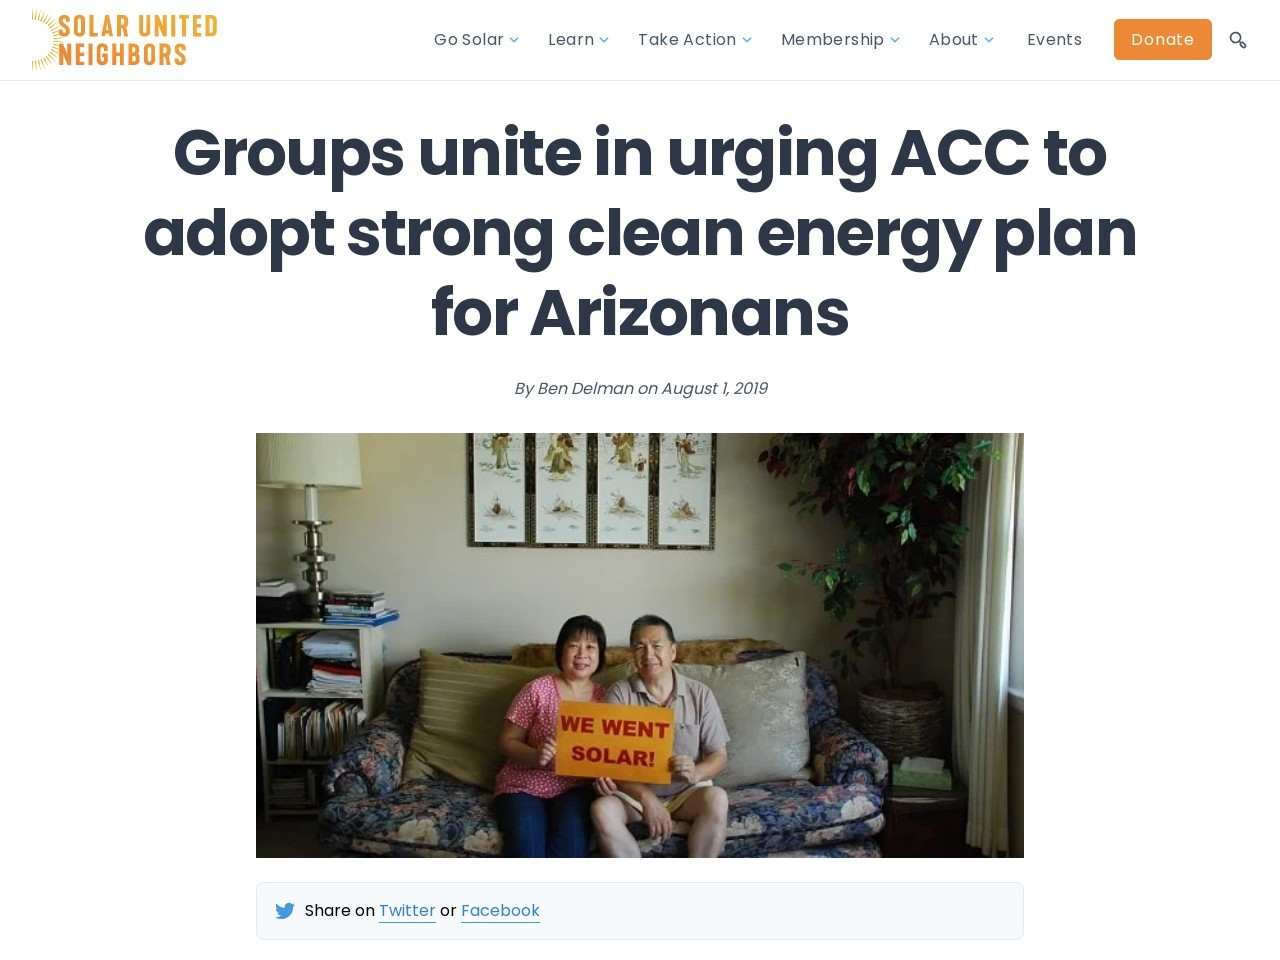 Groups unite in urging ACC to adopt strong clean energy plan for Arizonans